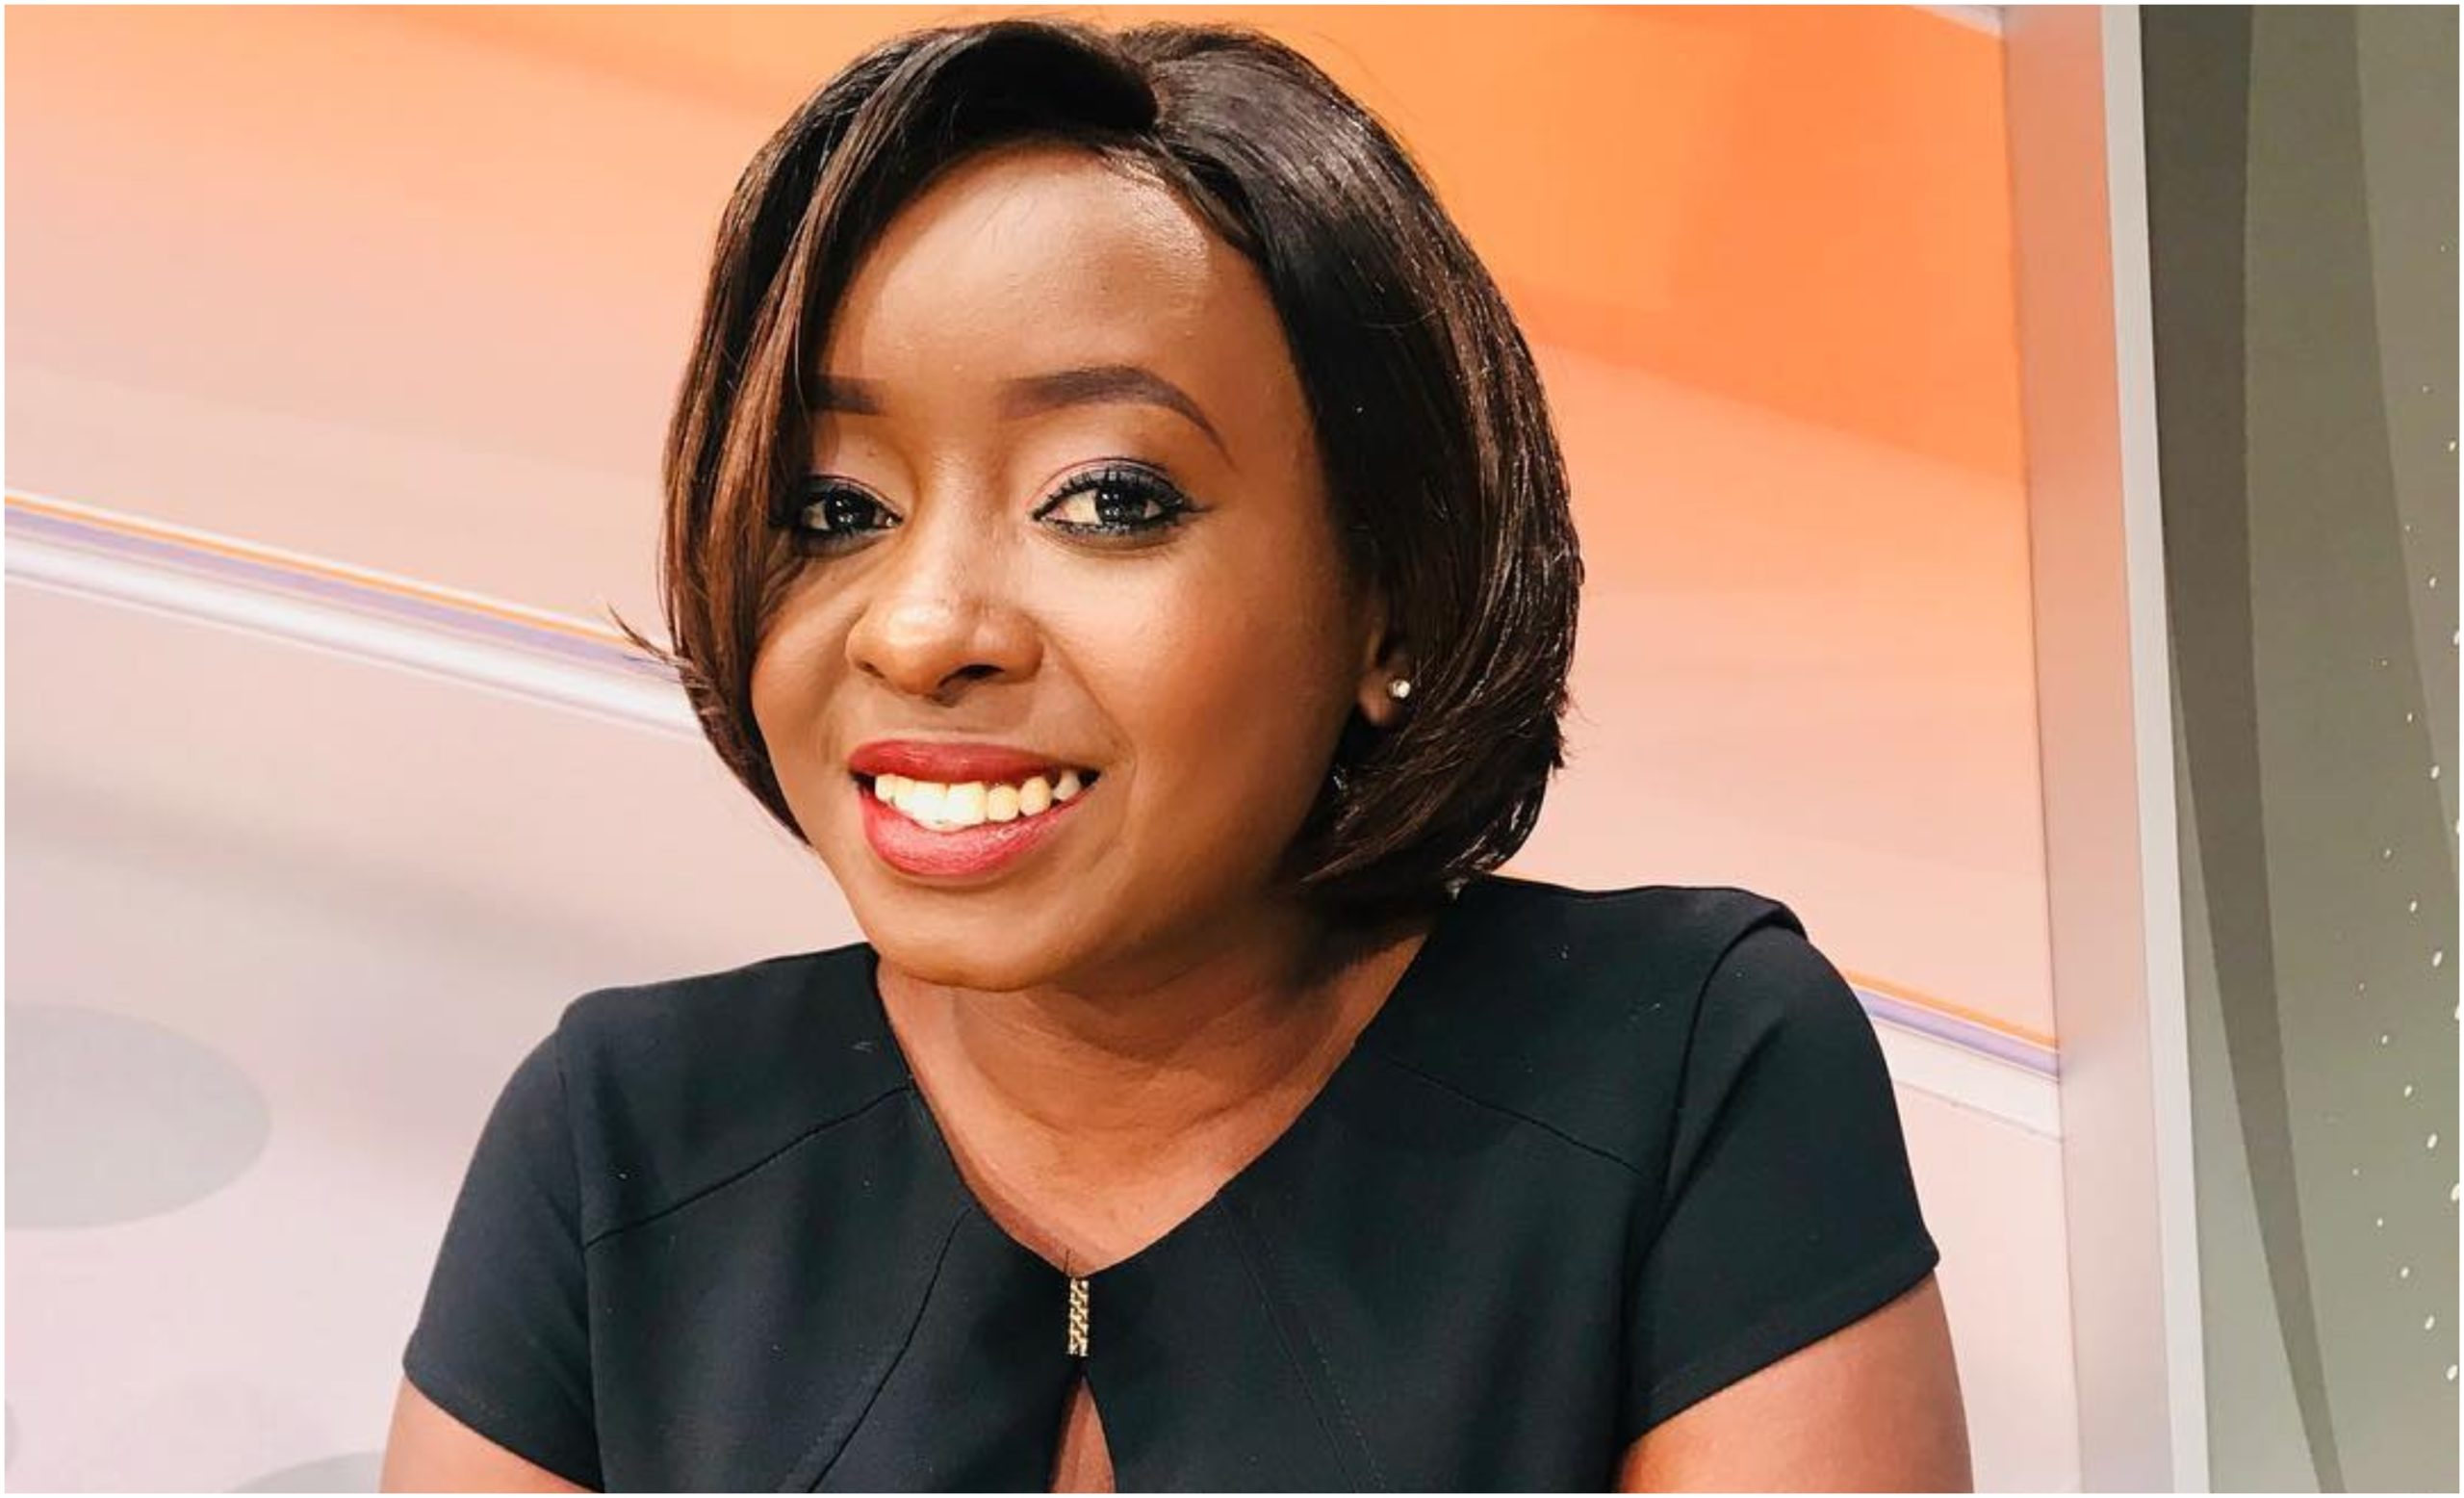 Revealed! The 2022 political seat Jacque Maribe is eyeing